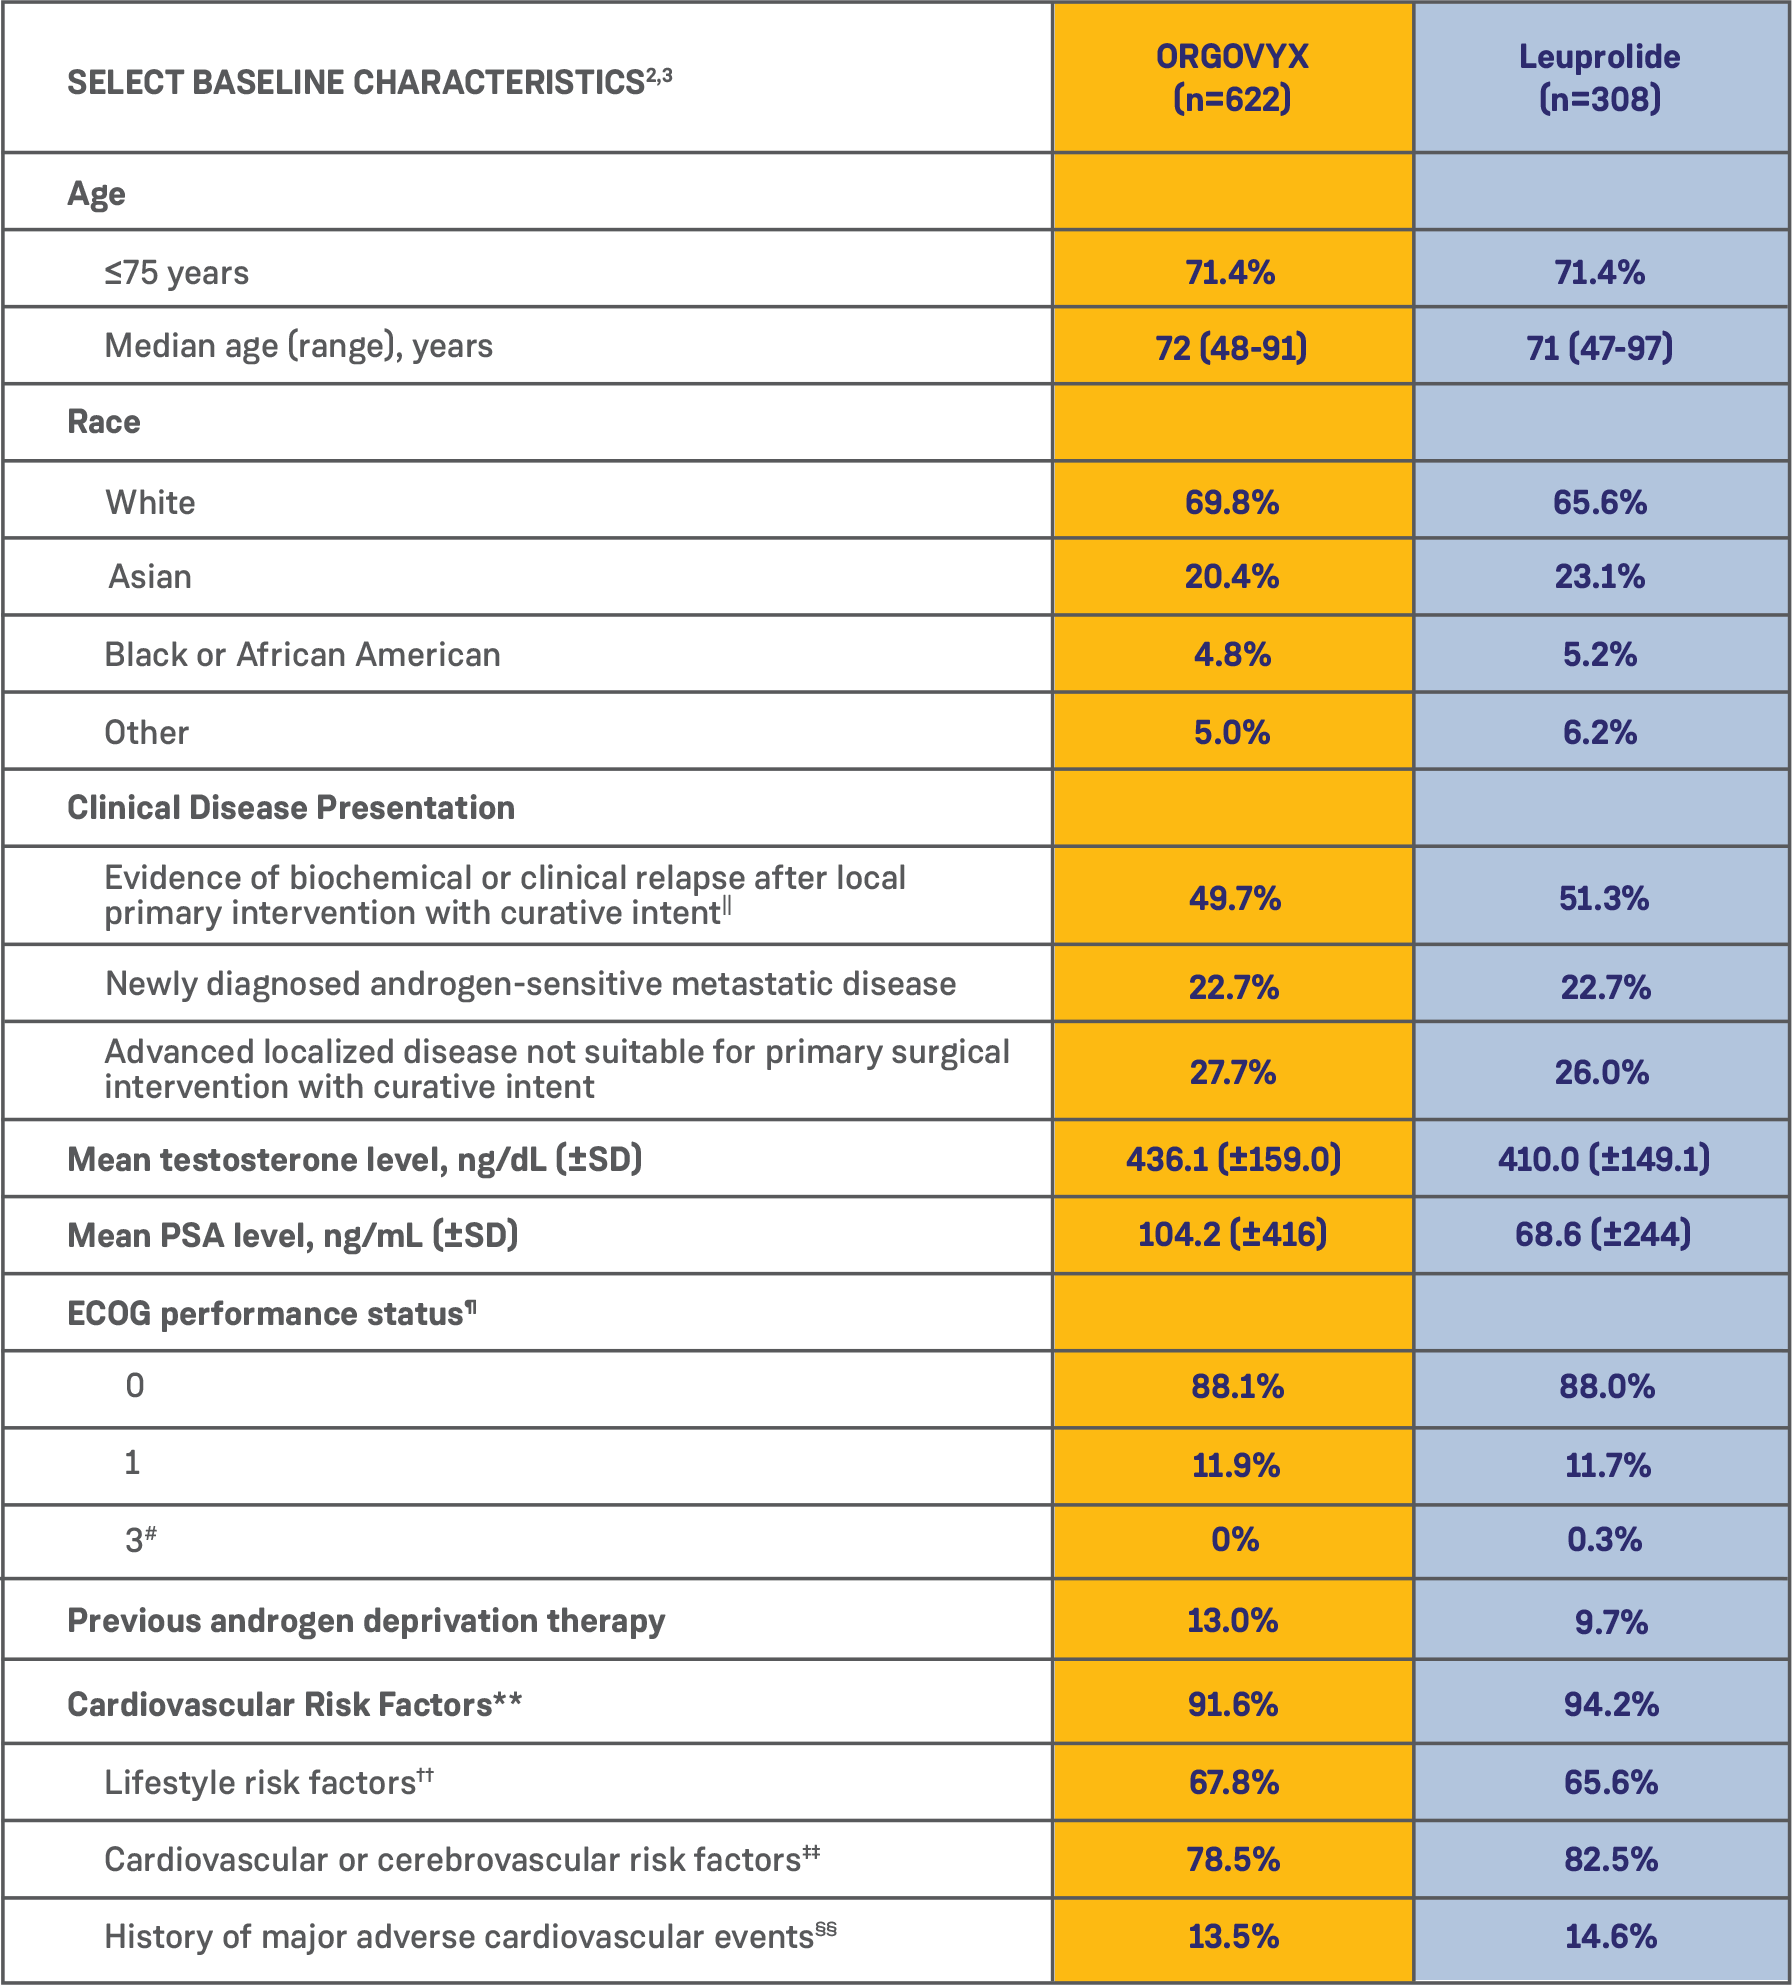 Table showing the baseline characteristics for the men participating in the ORGOVYX HERO study